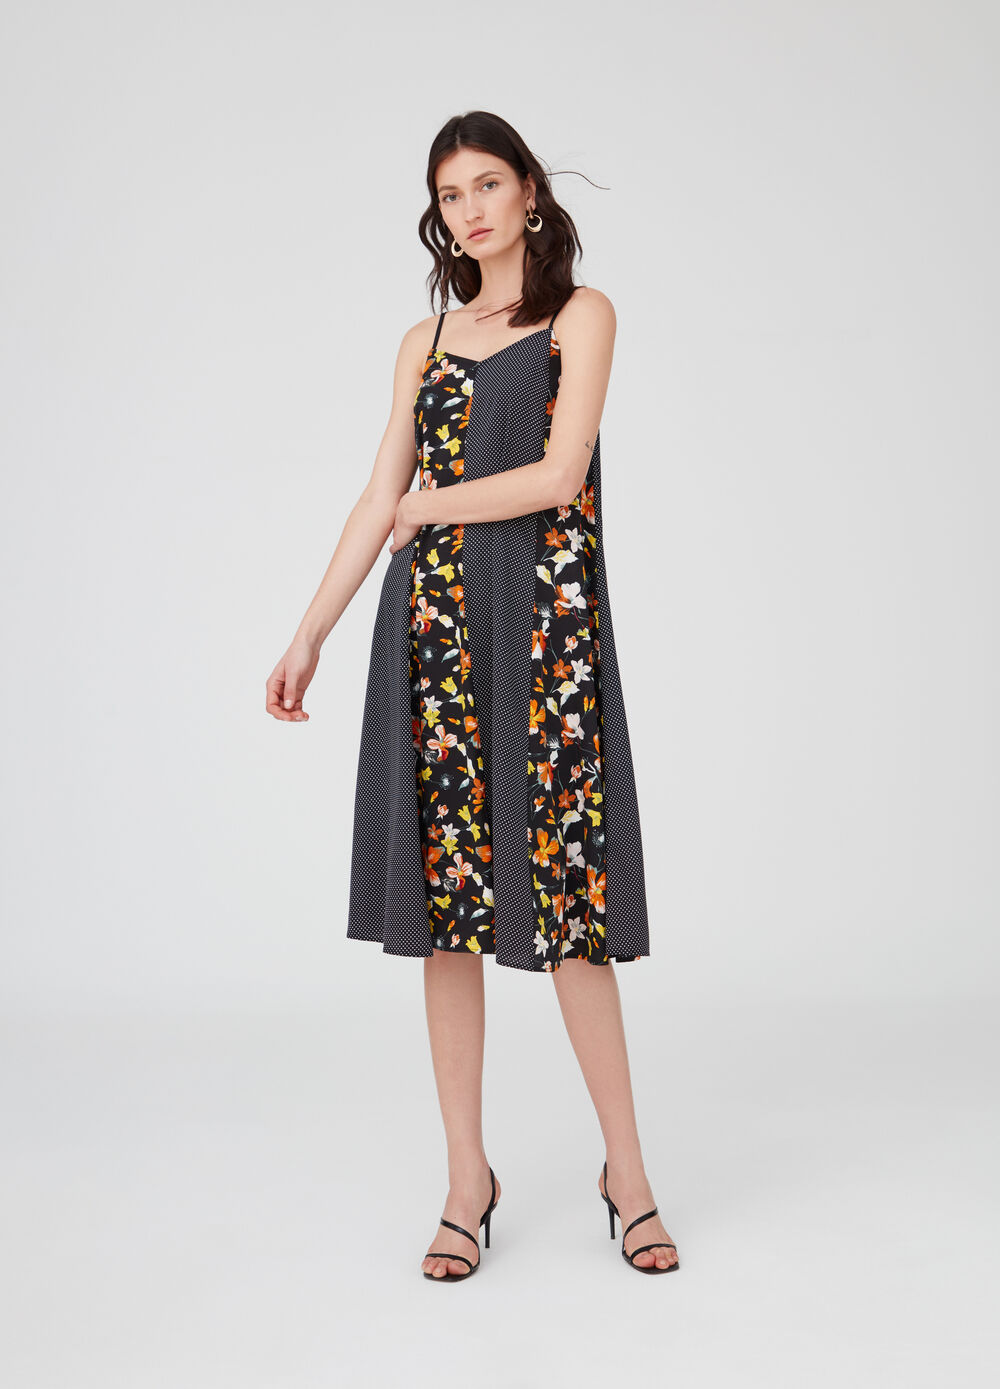 V-neck dress with polka dot and floral pattern